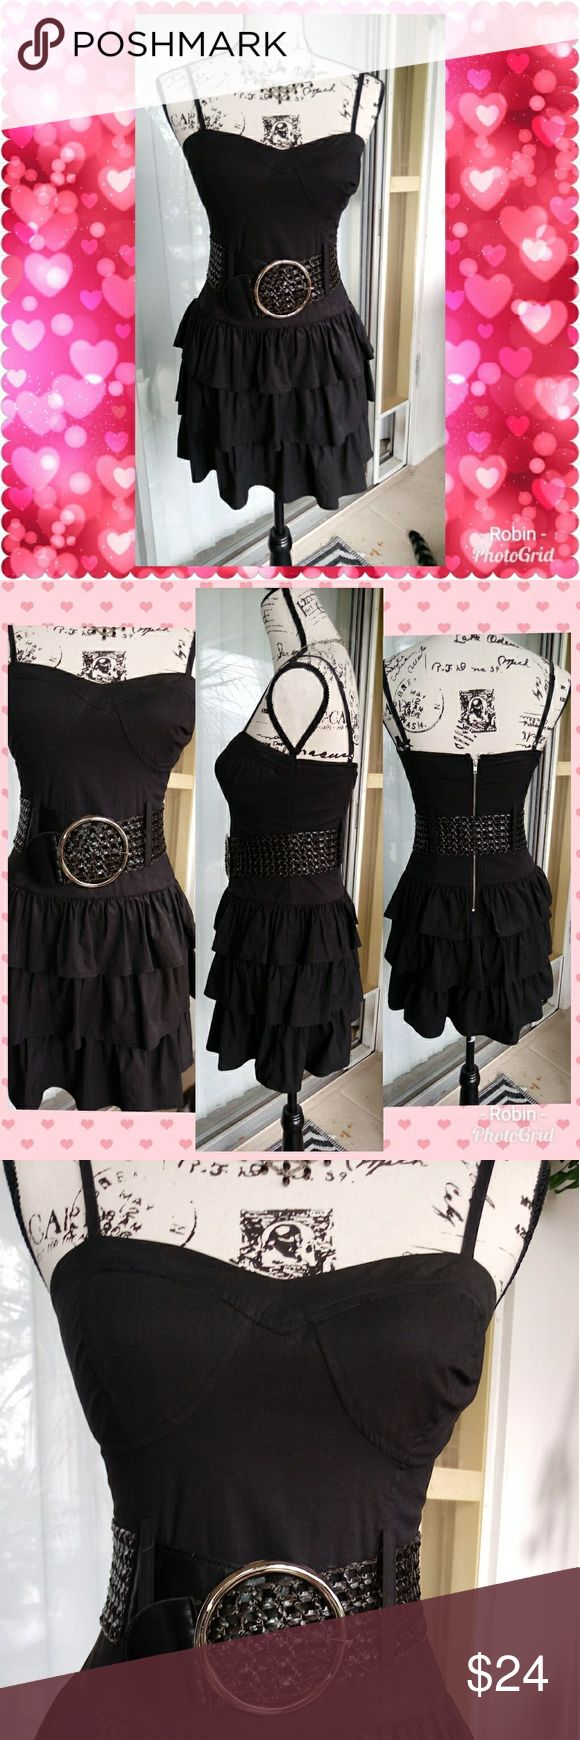 """Lil Black Dress Nice spaghetti strap dress with adjustable straps. Wide 3"""" belt comes with it. 3 tiered ruffles Zipper Back.  22.5"""" long from back 13"""" waist 🌺COMES FROM SMOKE FREE CAT FRIENDLY HOME🌺 2B Bebe Dresses Mini"""